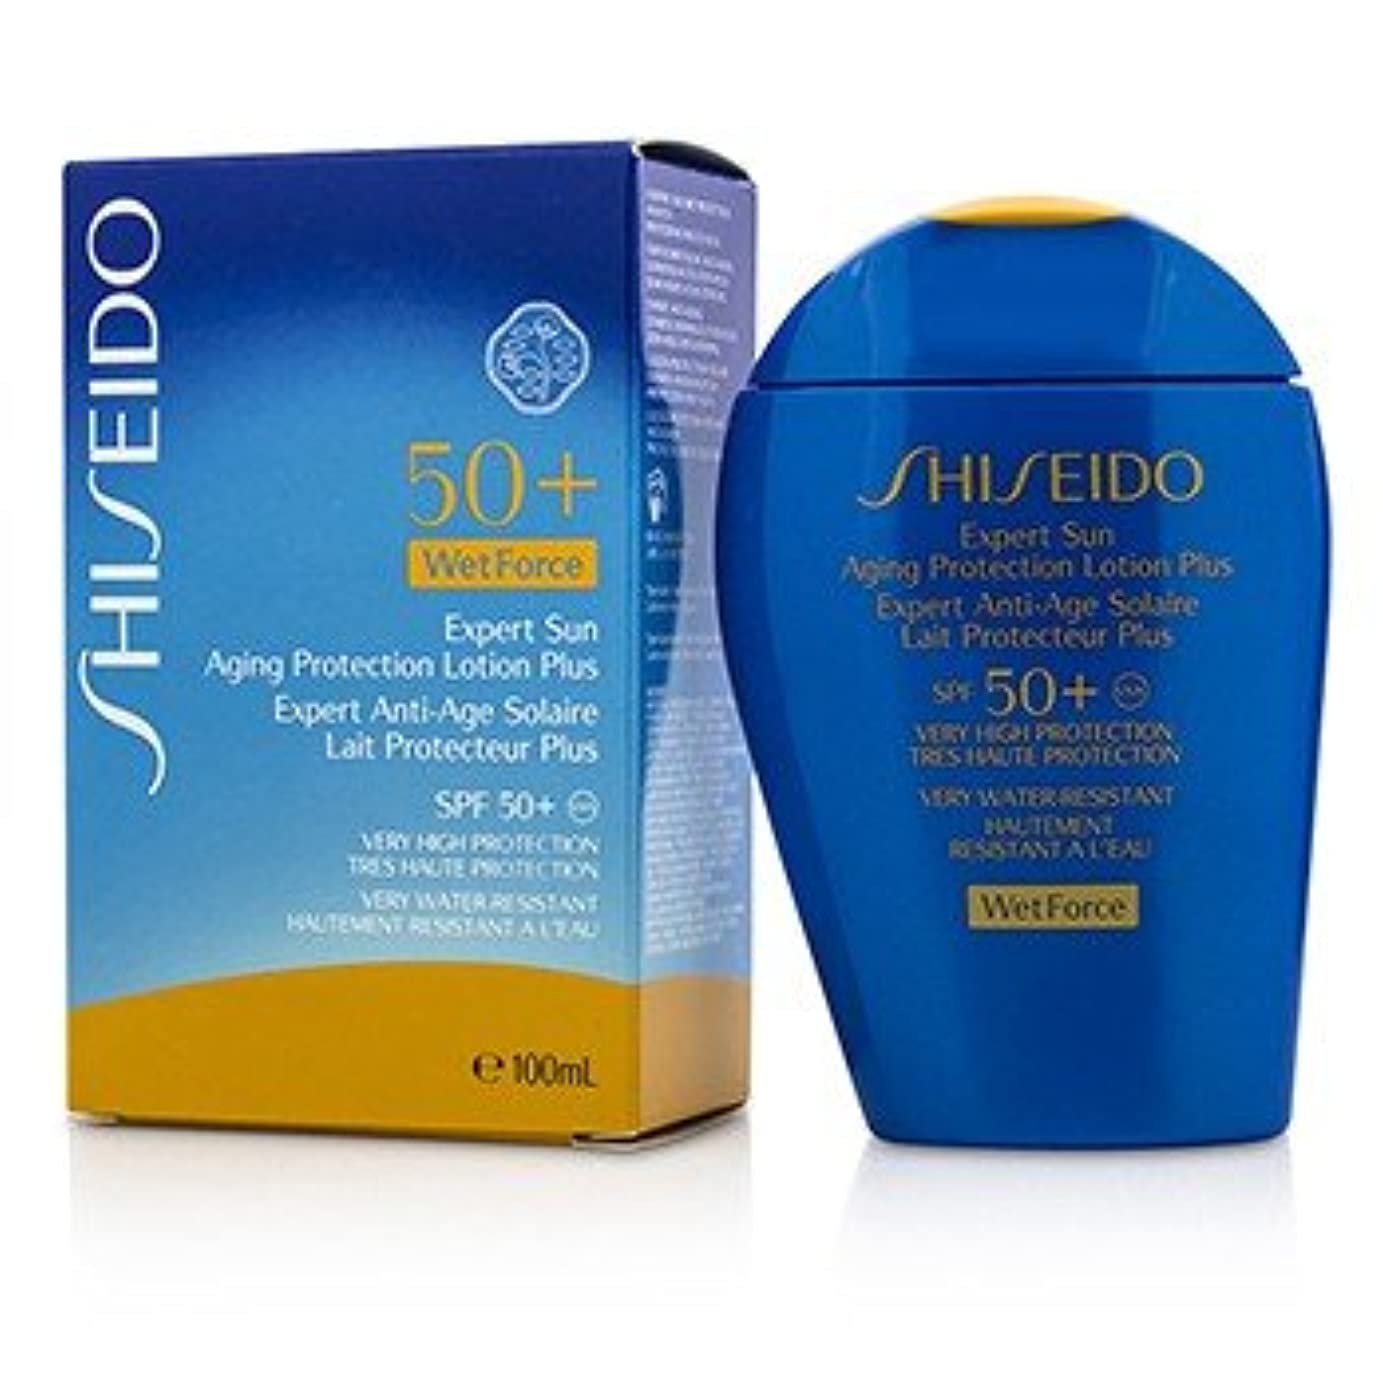 デュアルチャット冗長[Shiseido] Expert Sun Aging Protection Lotion Plus WetForce For Face & Body SPF 50+ 100ml/3.4oz